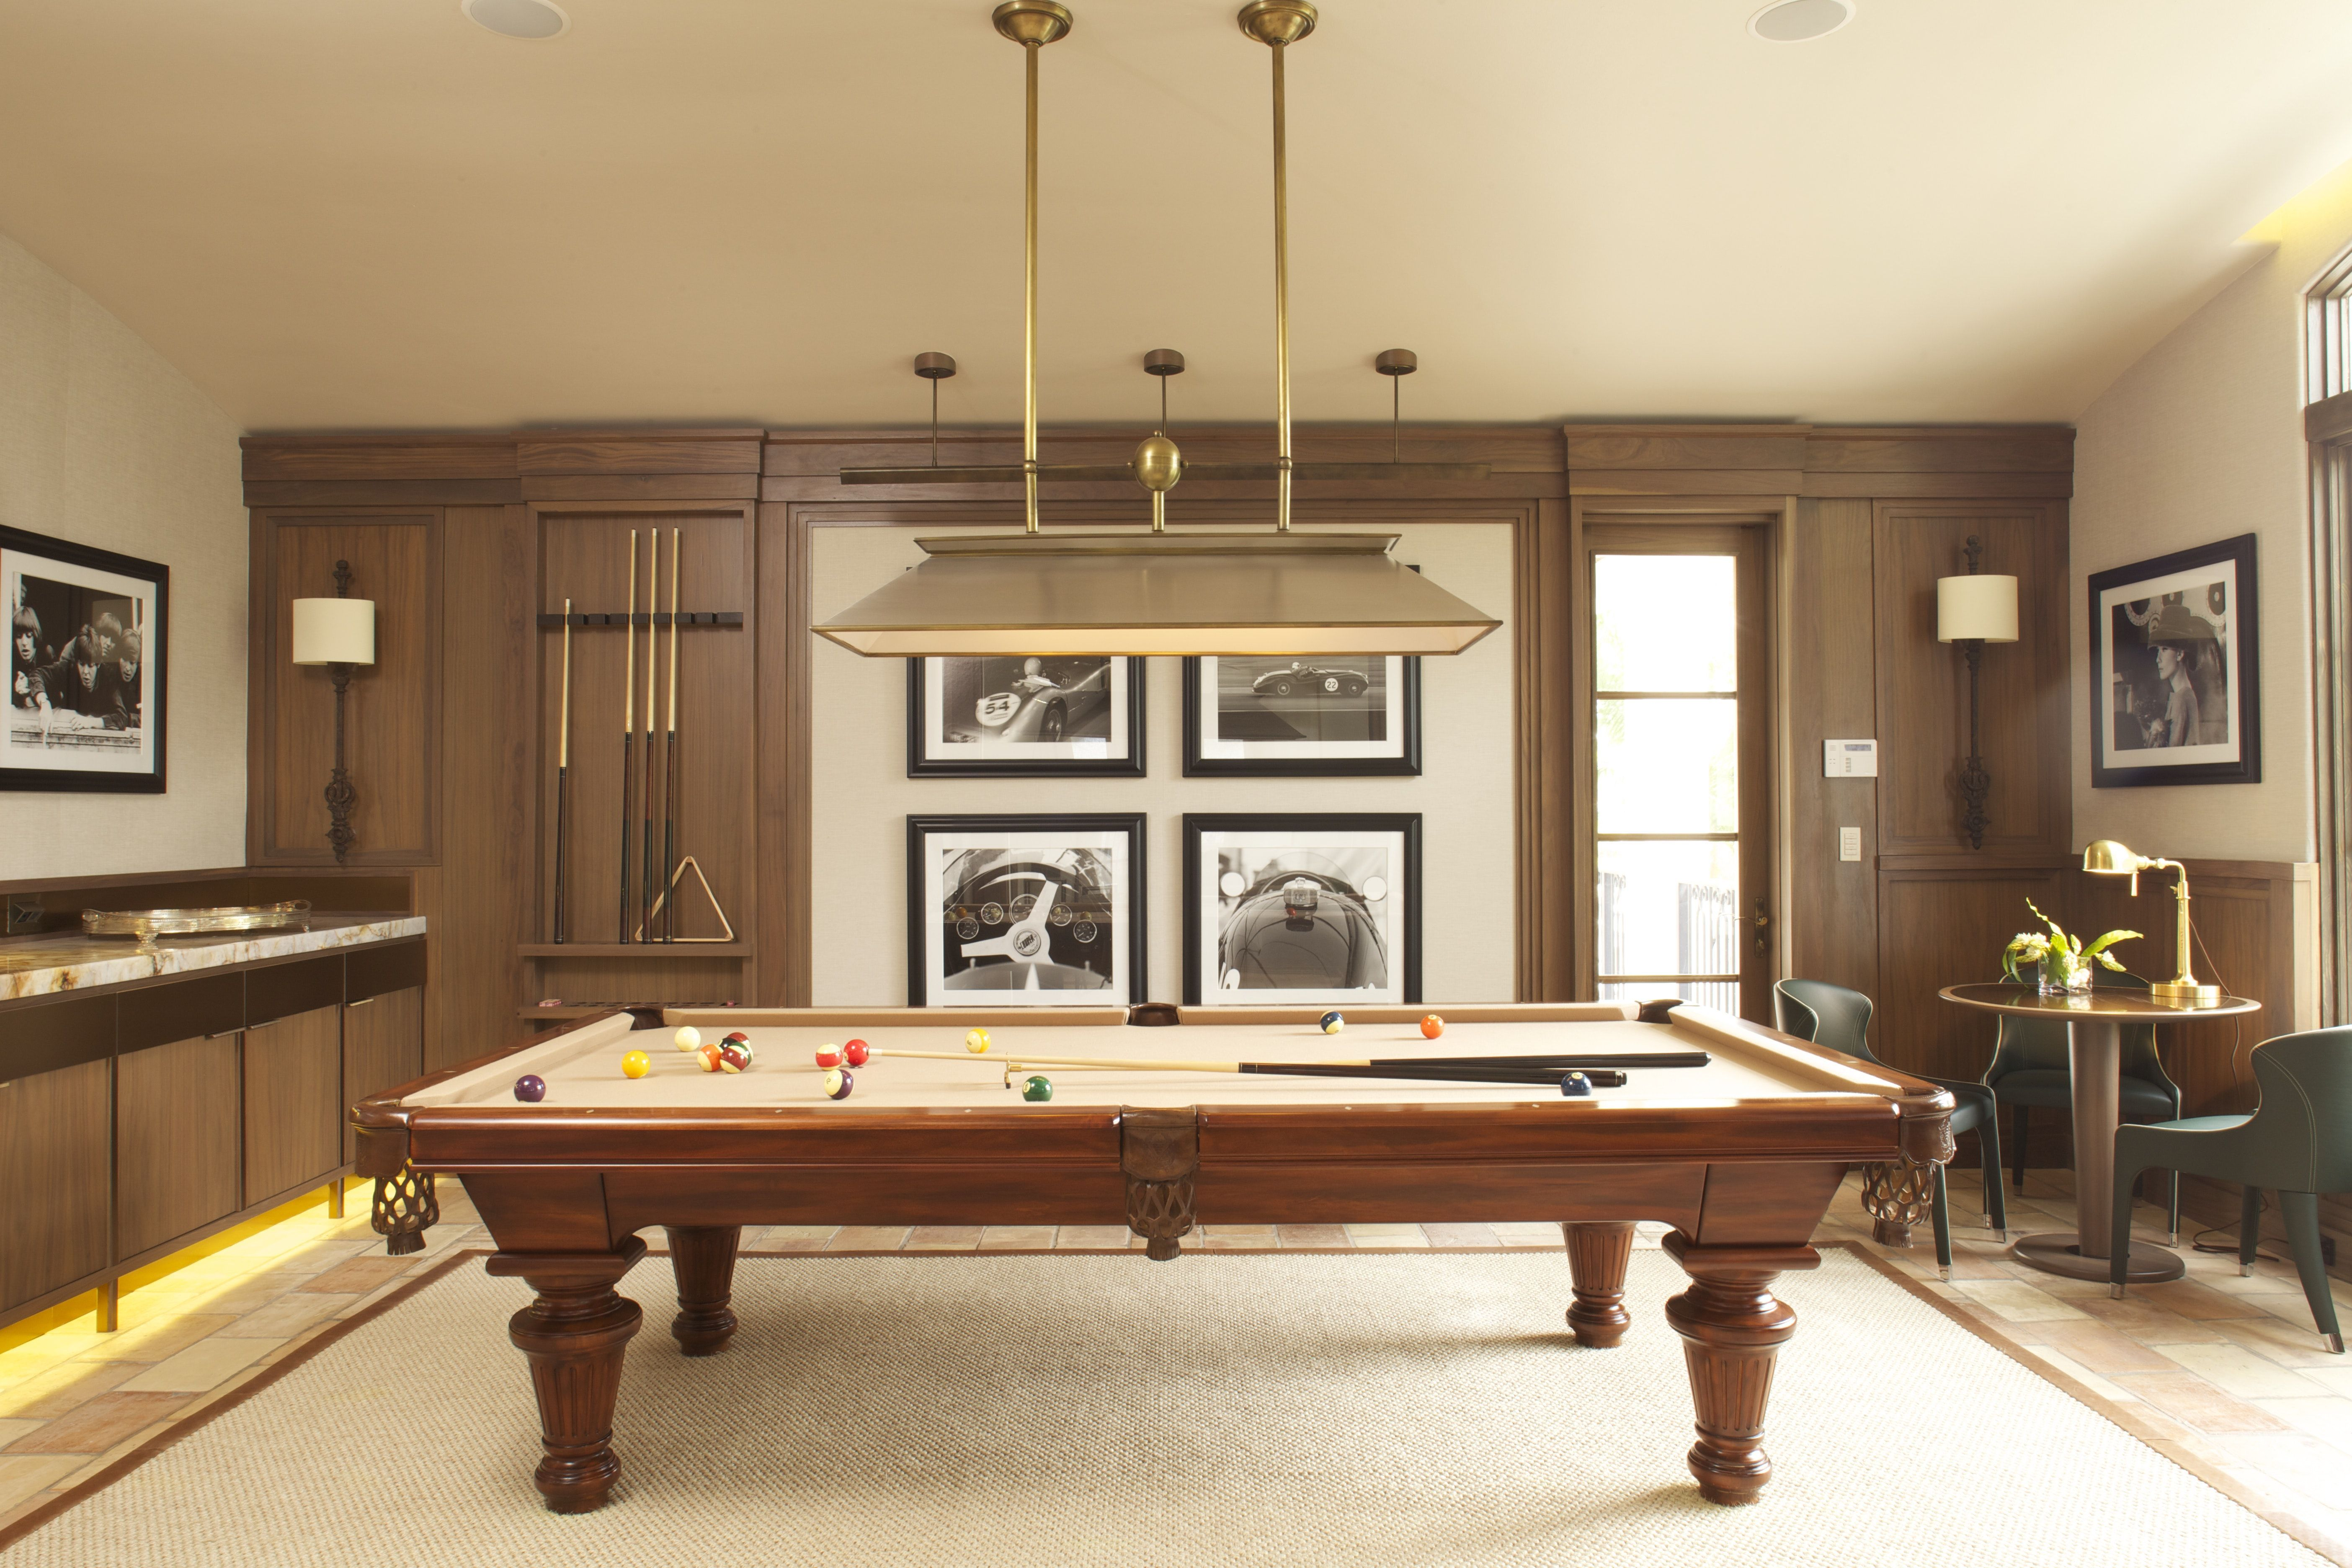 Miami Game Room Warm Muted Luxurious Materials Contribute To The